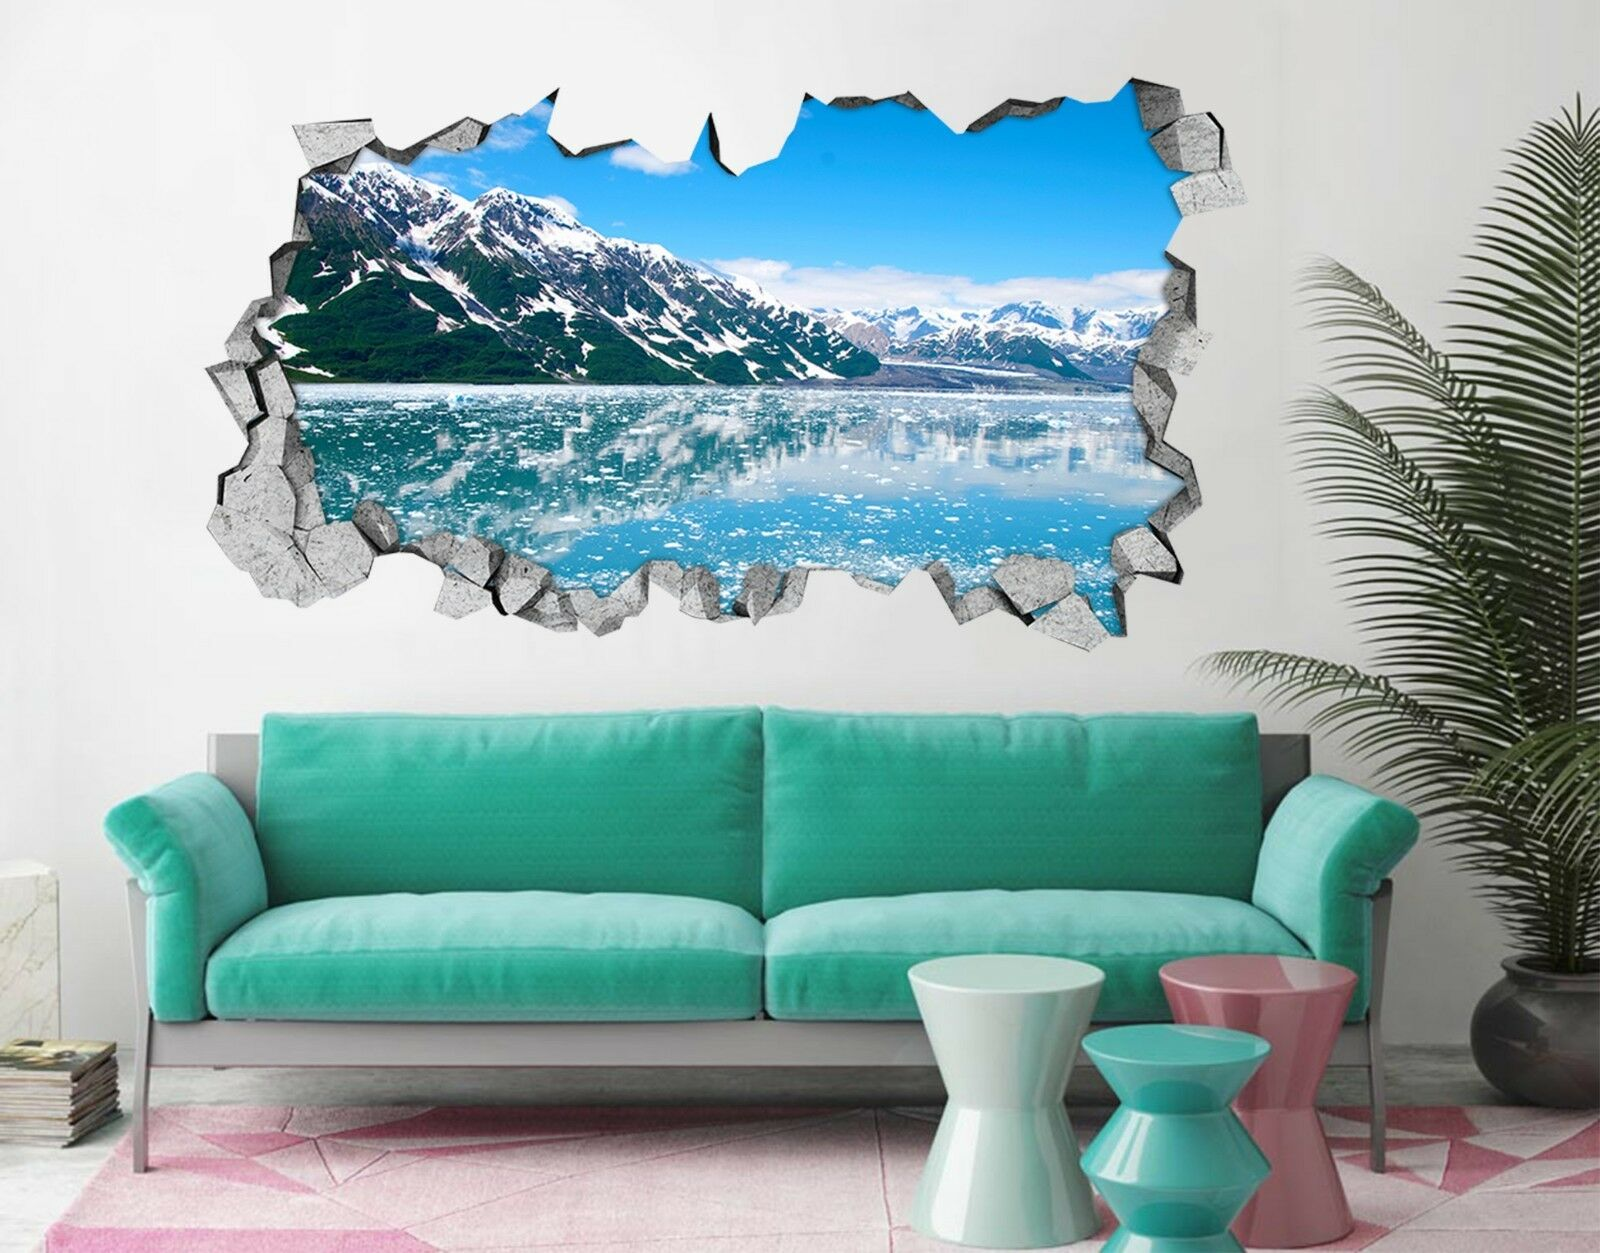 3D Lago Di Neve blue 110 Parete Murales Adesivi Decal Sfondamento AJ WALLPAPER IT